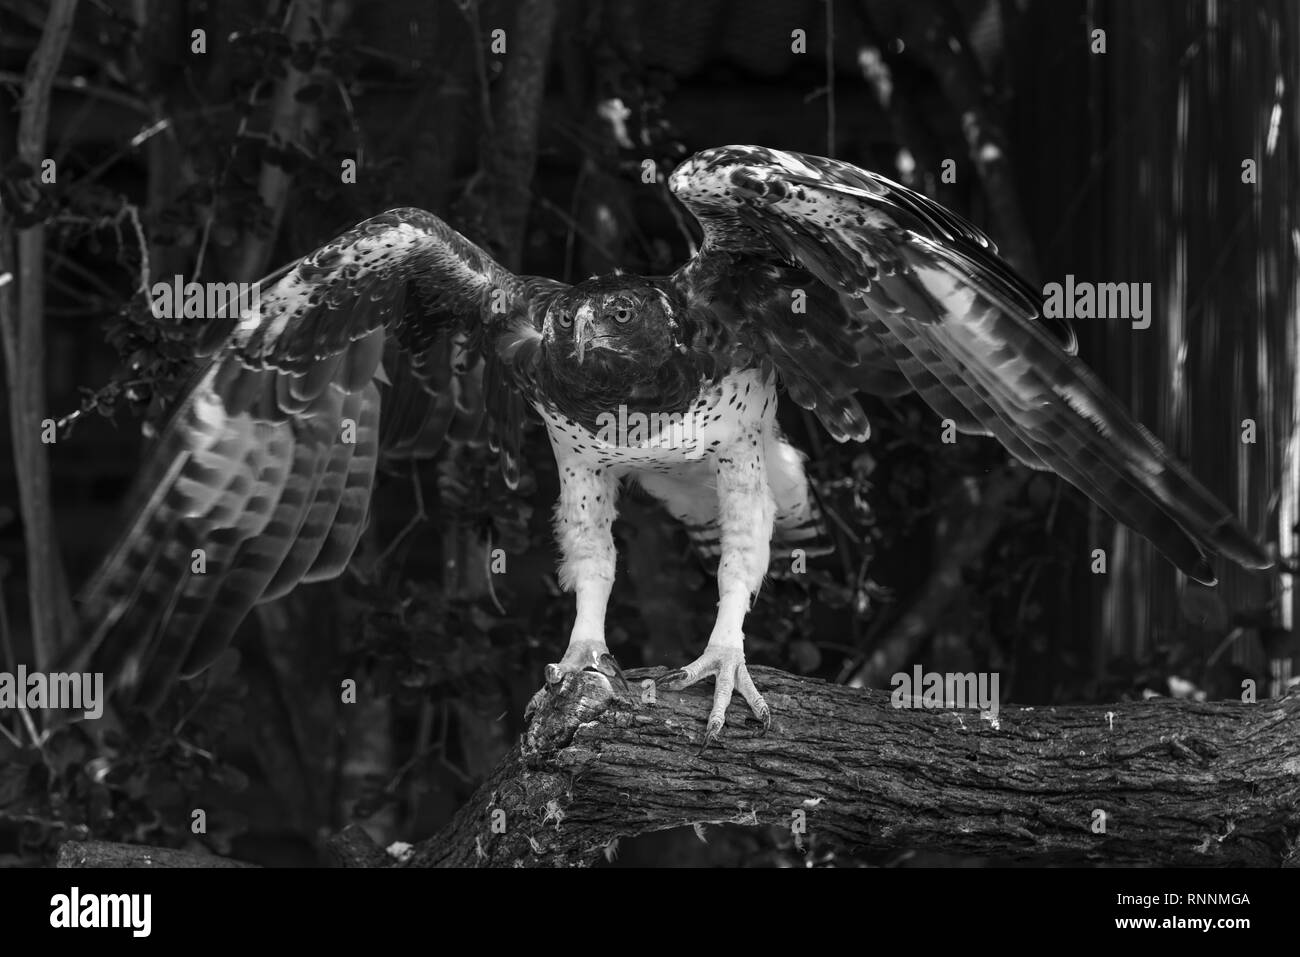 A Martial Eagle flapping it's wings at the African Raptor Centre, Natal Midlands, South Africa. - Stock Image